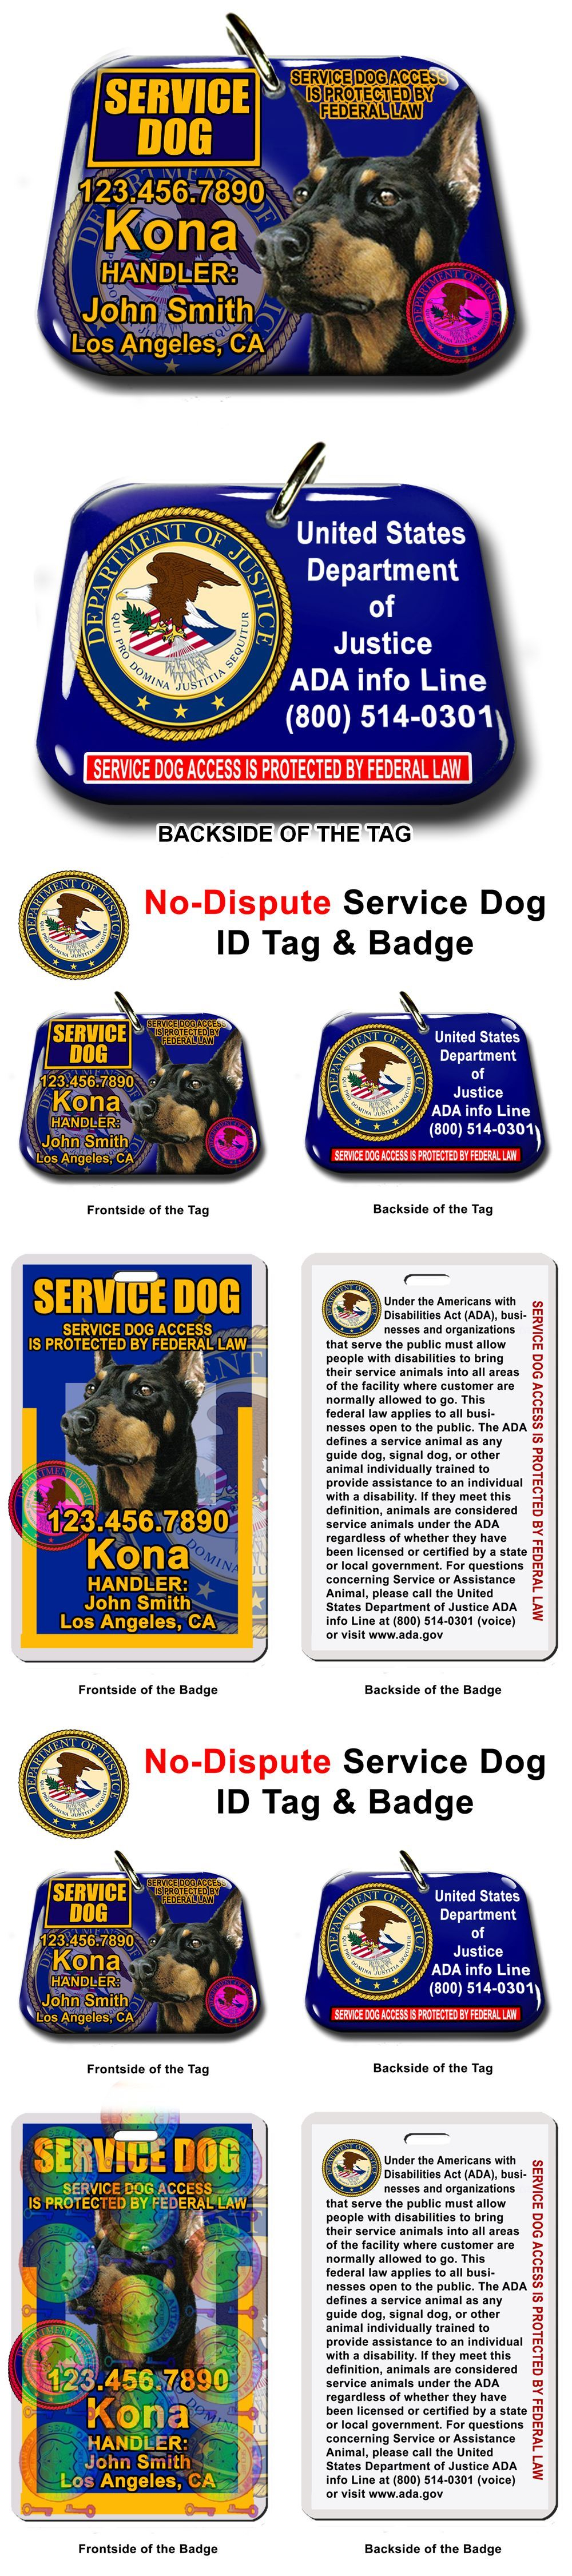 Tags and Charms 177790: Service Dog Id Tag Id Card Custom Pet Tag Ada With Your Dog Info Small Or Big -> BUY IT NOW ONLY: $34.95 on eBay!